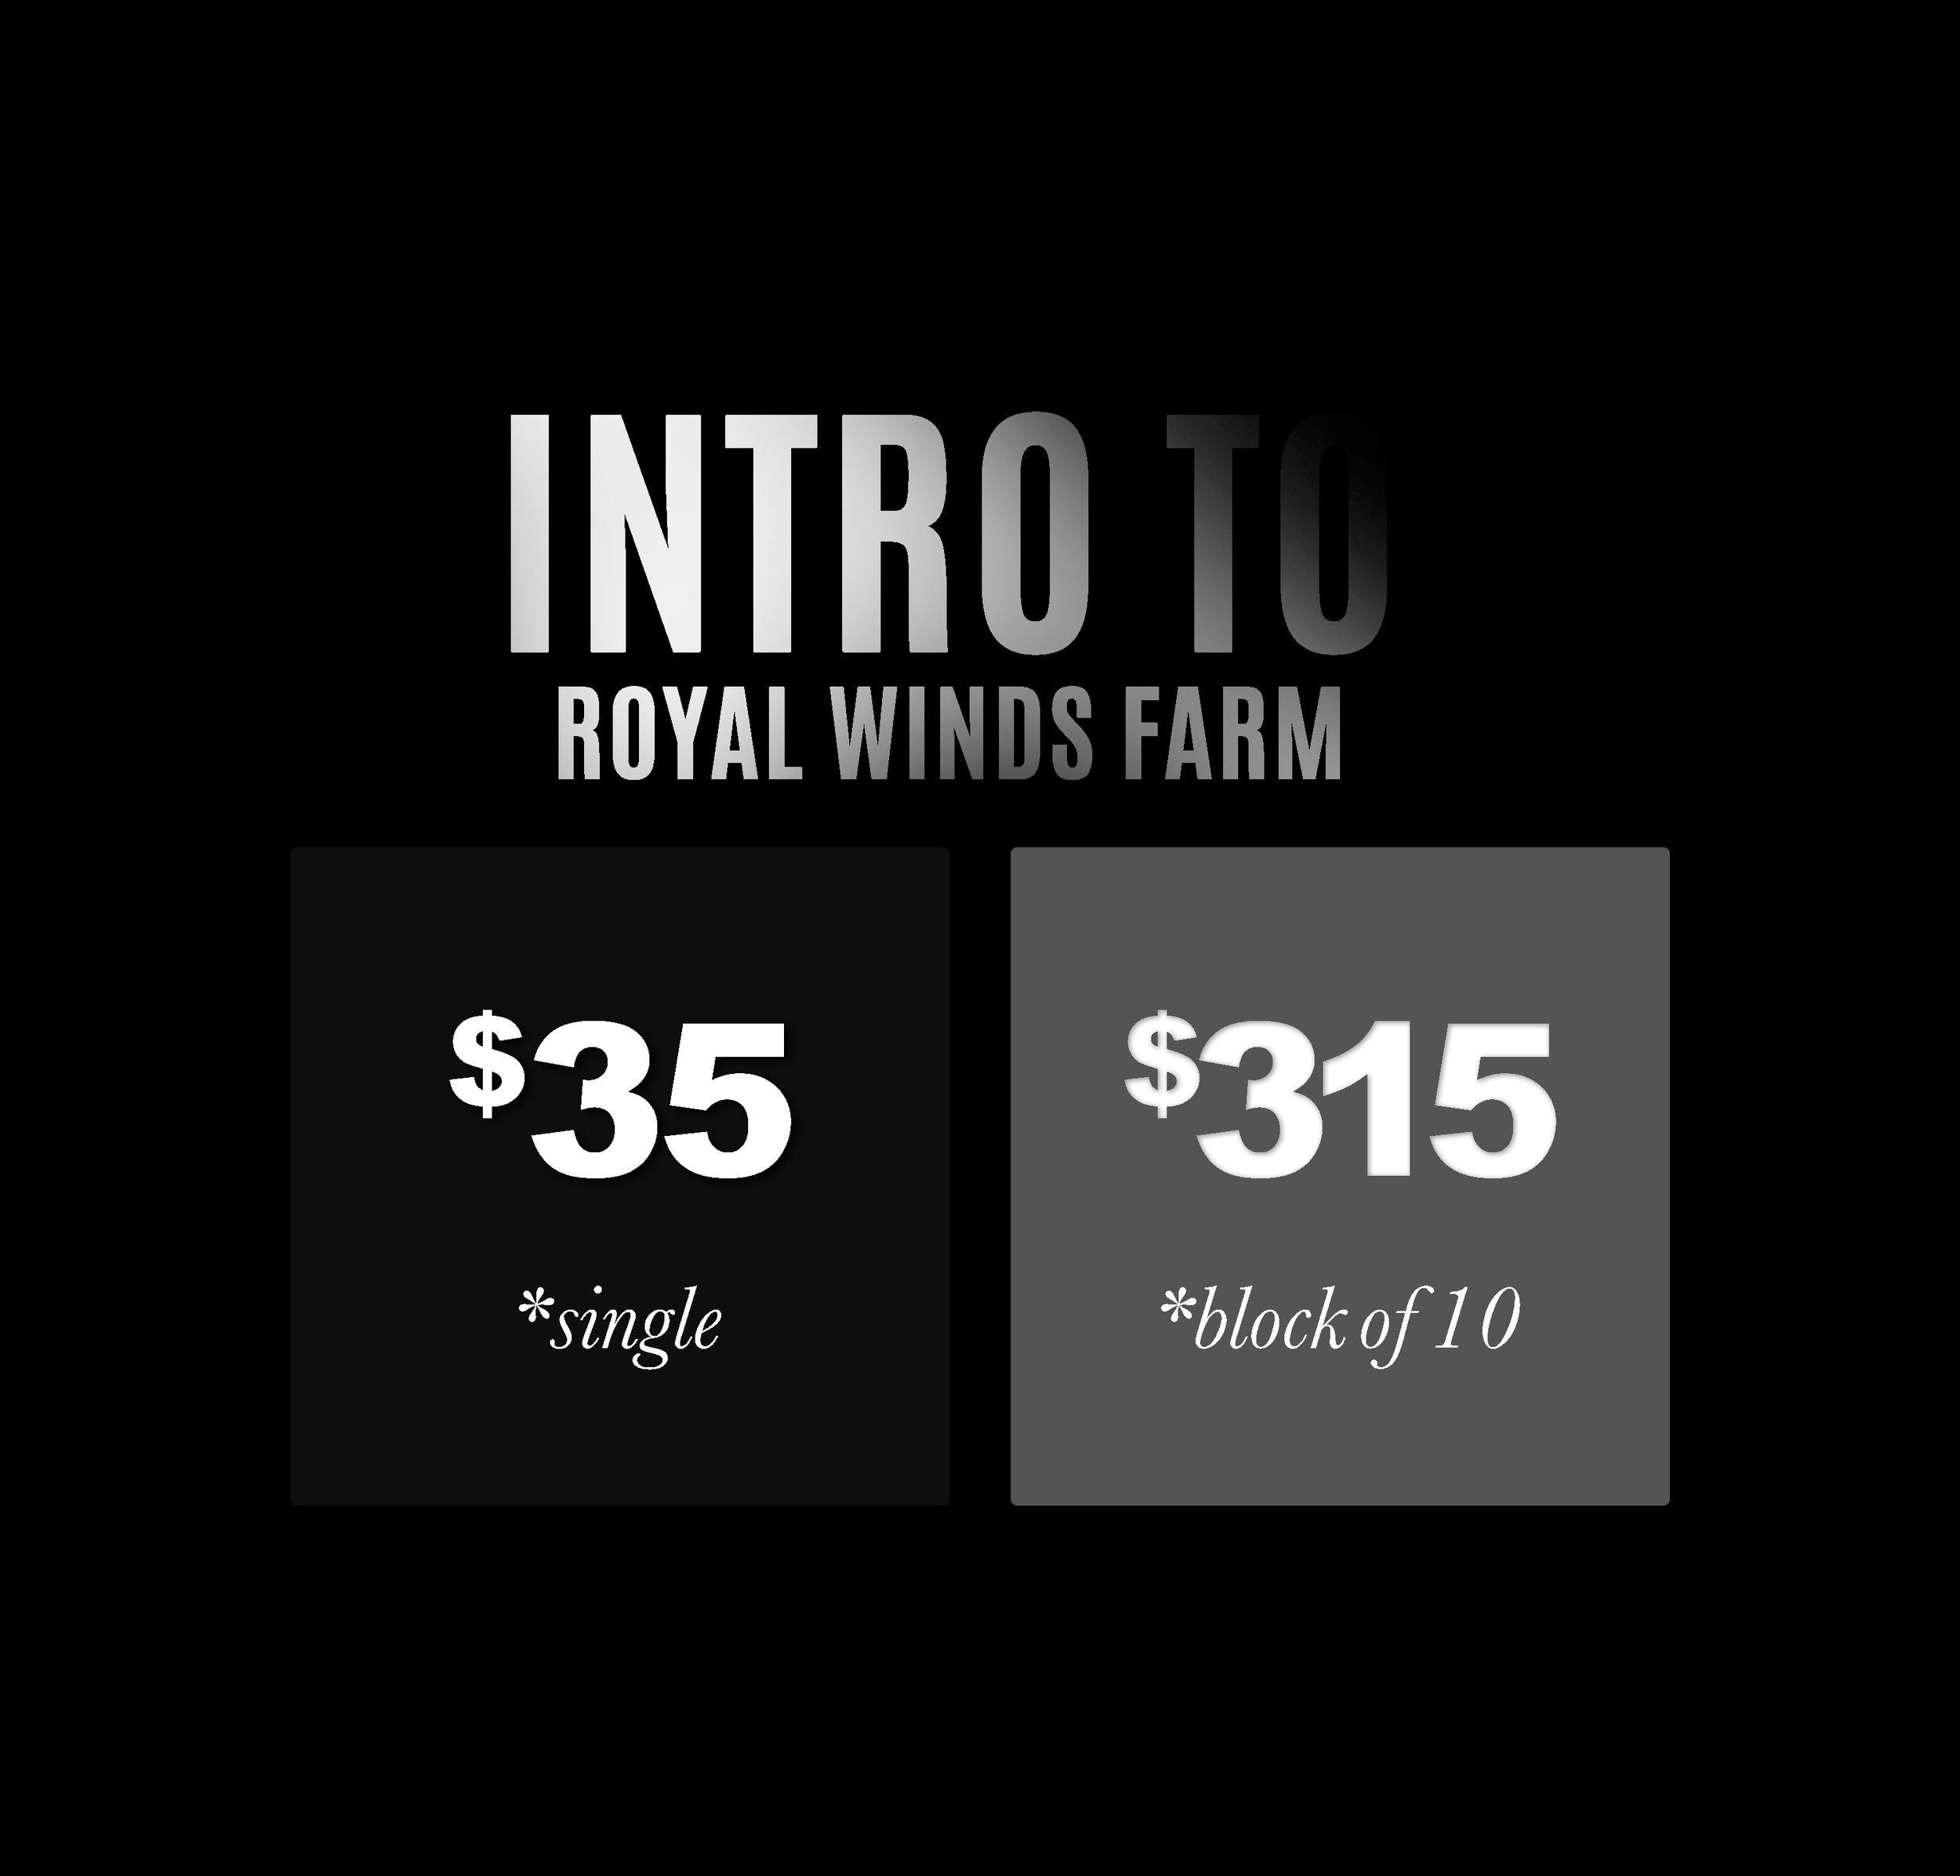 Intro to Royal Winds Farm is required for first time students. It focuses on Horsemanship through 30 minutes of riding time and 30 minutes of horse care and hands on experience.   Classes offered on Monday 5:00-6:00 PM, Wednesday 5:00-6:00PM and Sunday 2:00-4:00 PM.